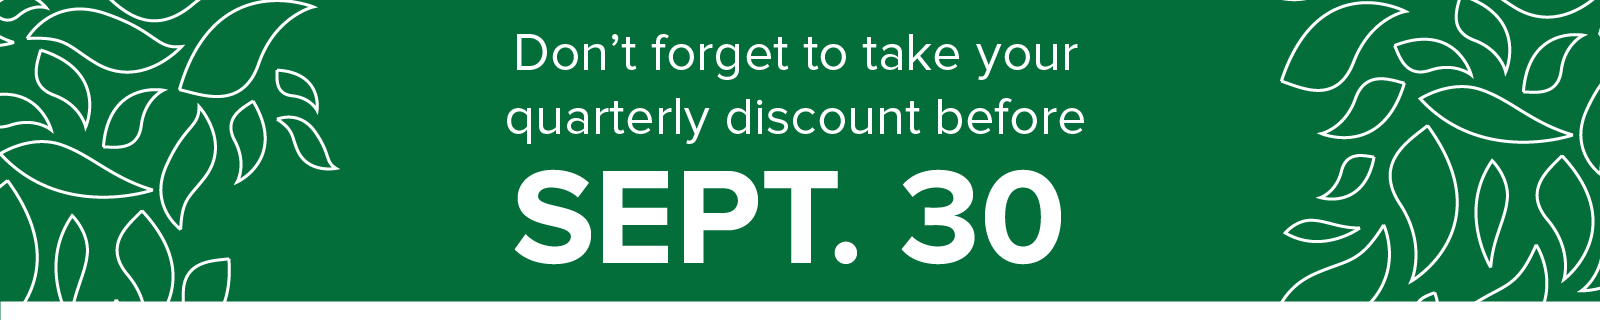 don't forget to take your quarterly owner discount by sept. 30